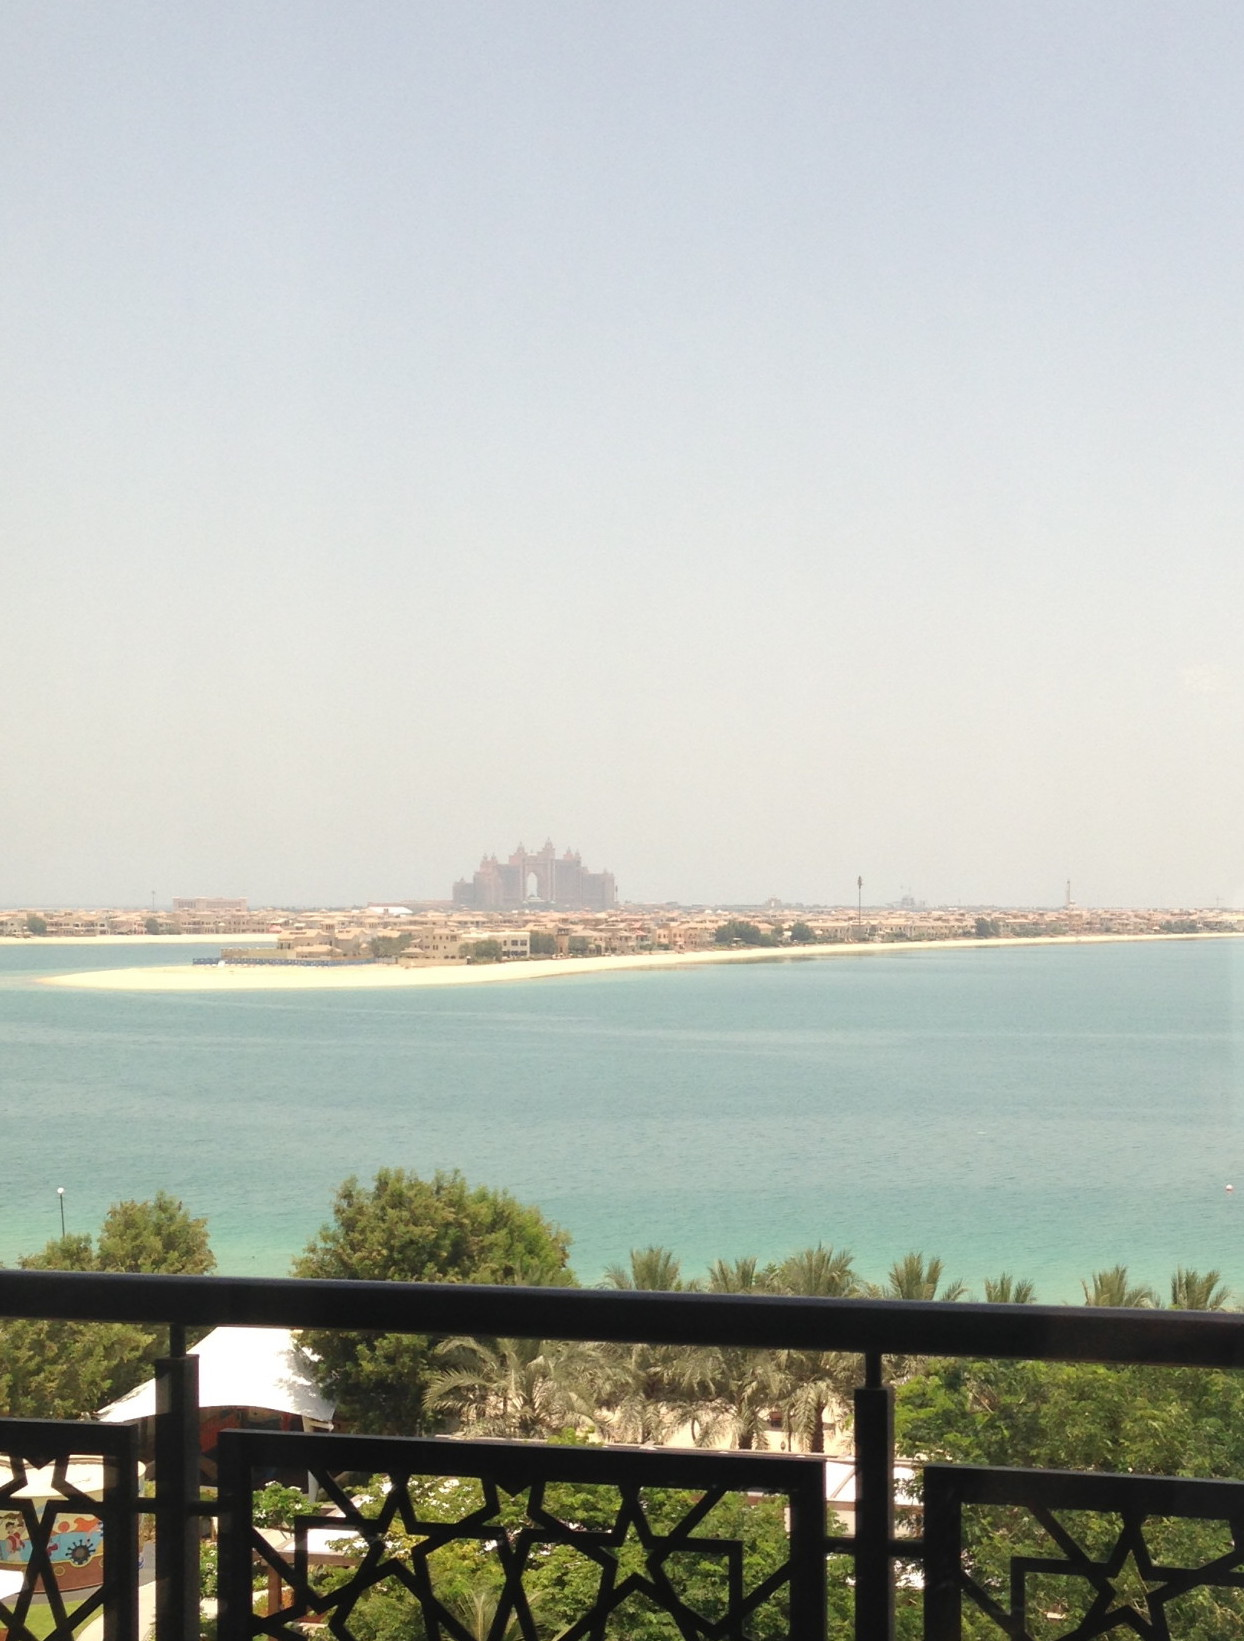 VIEW DUBAI PALM ATLANTIS